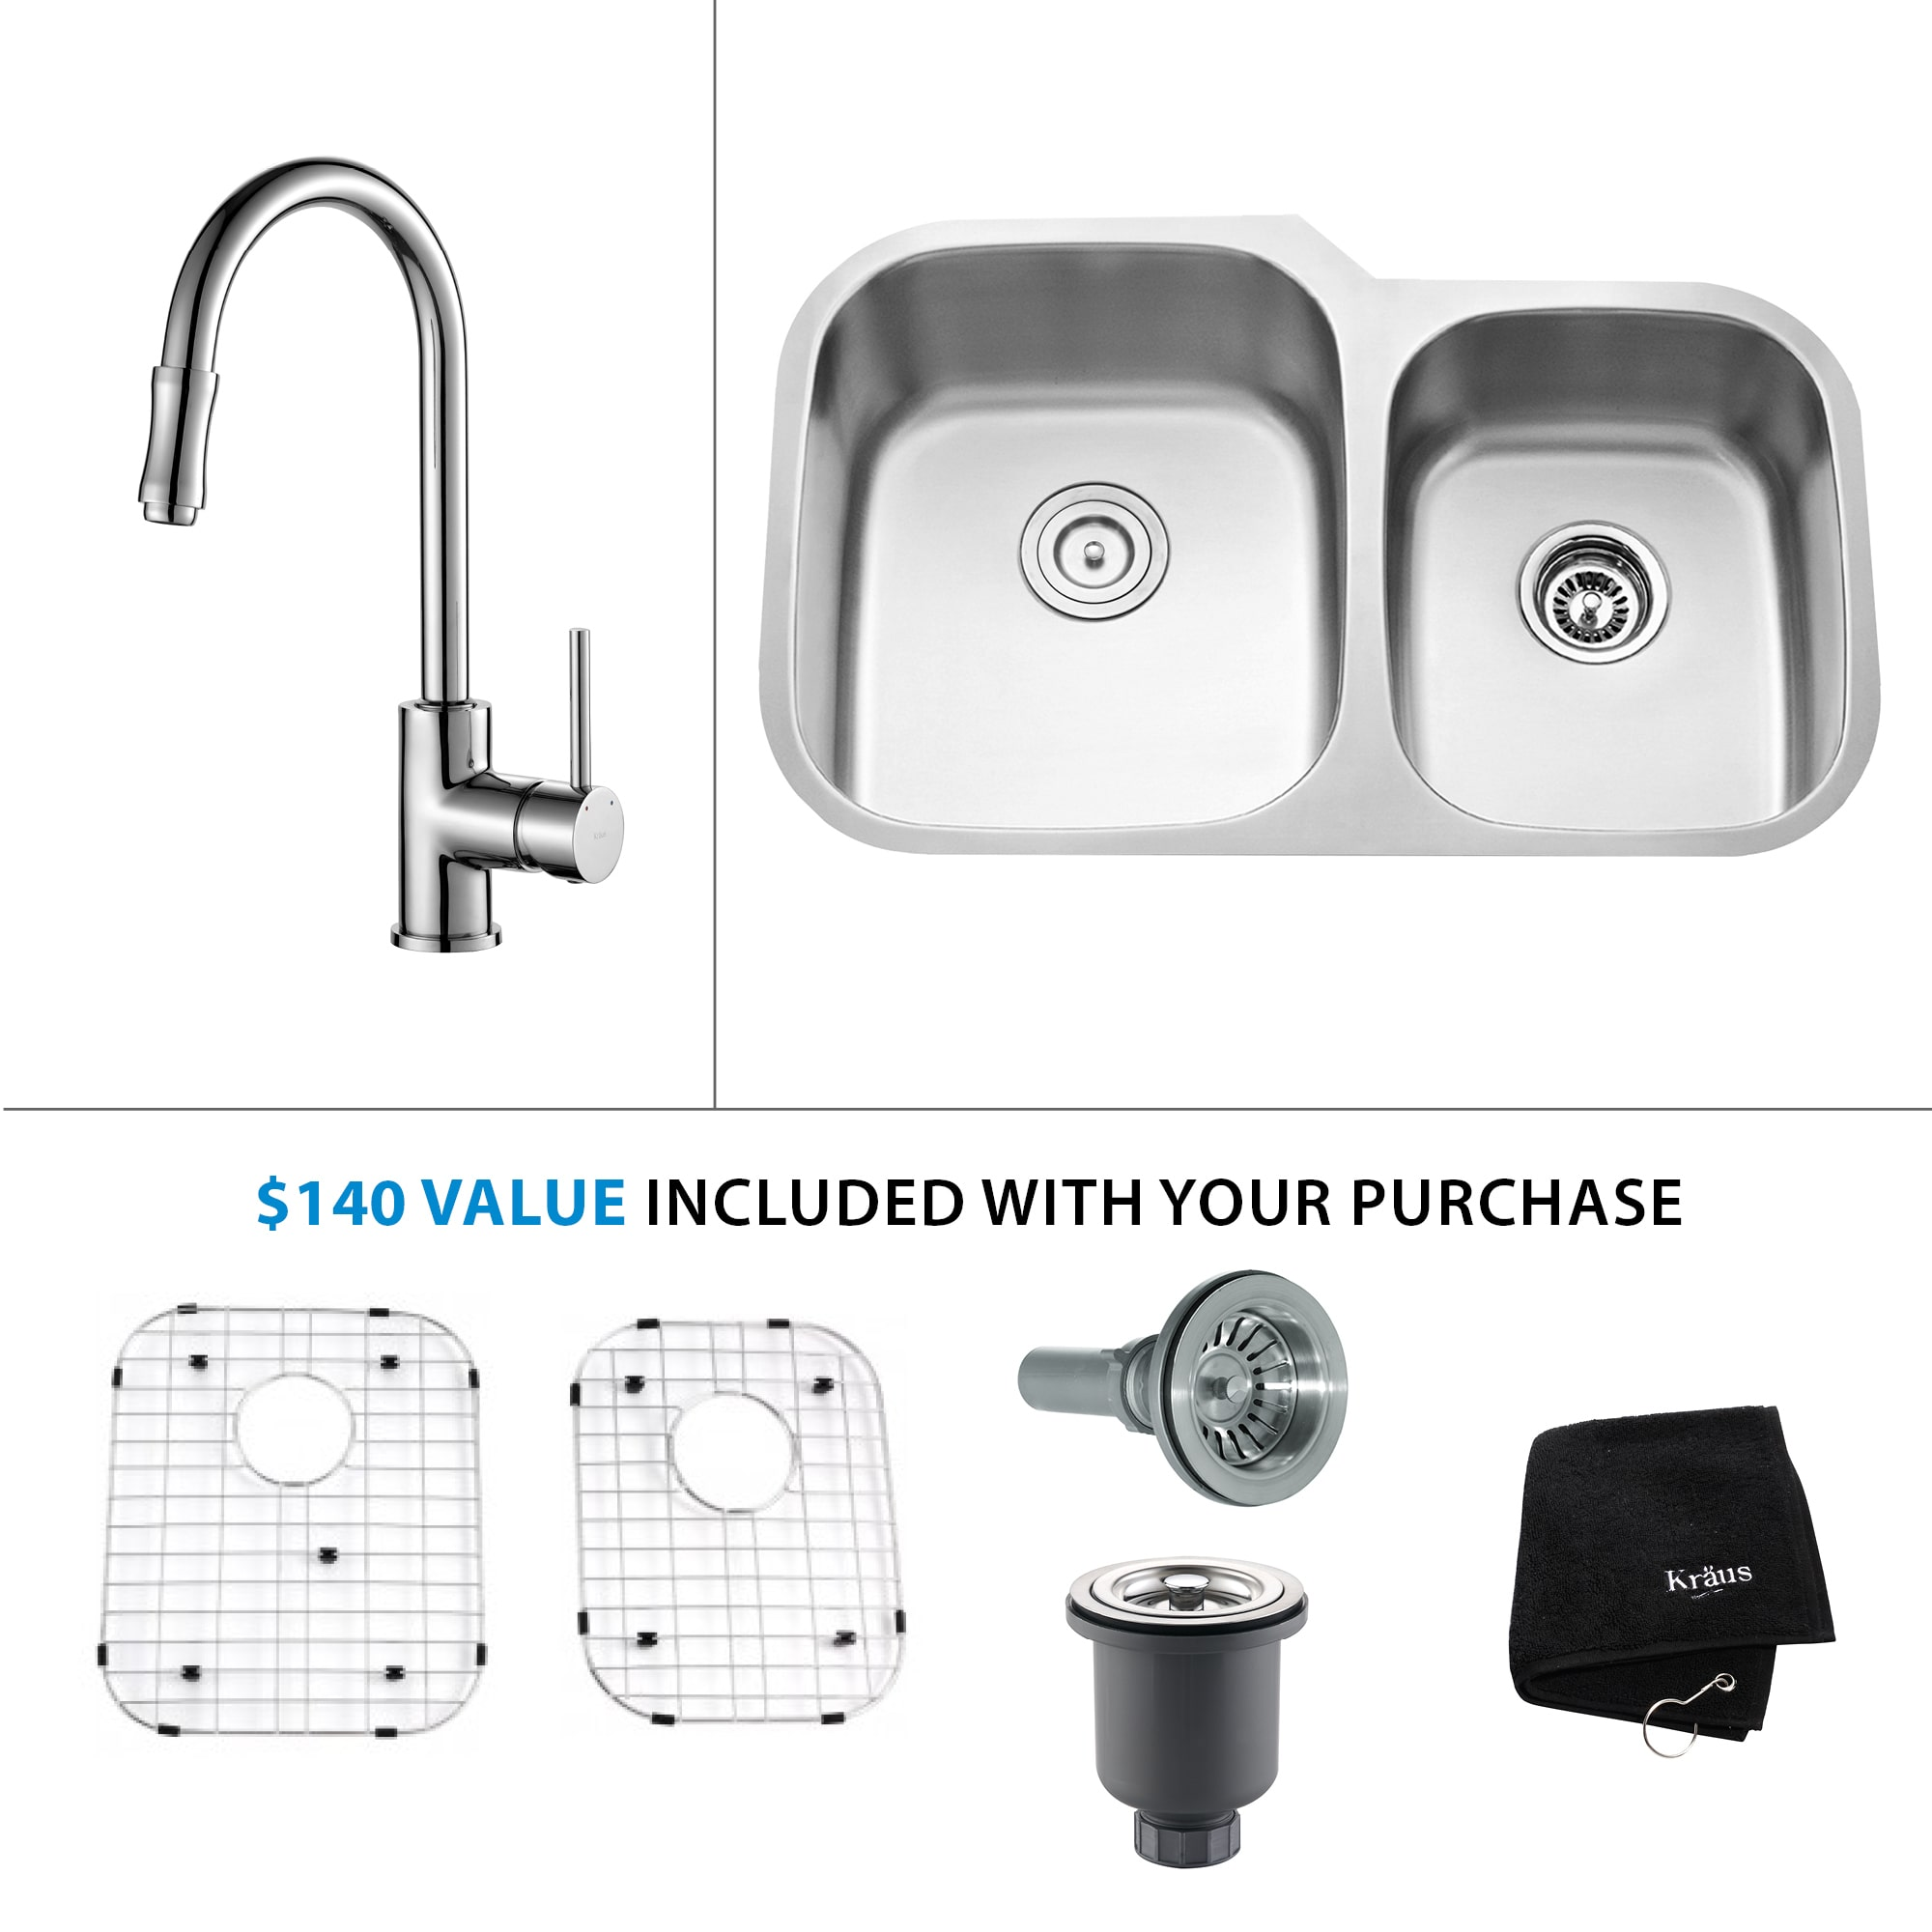 Kraus Kbu24 Kpf 1622ch Stainless Steel Chrome Kitchen Combo 32 Undermount Double Basin 16 Gauge Stainless Steel Kitchen Sink With Pullout Stream Kitchen Faucet Faucet Com